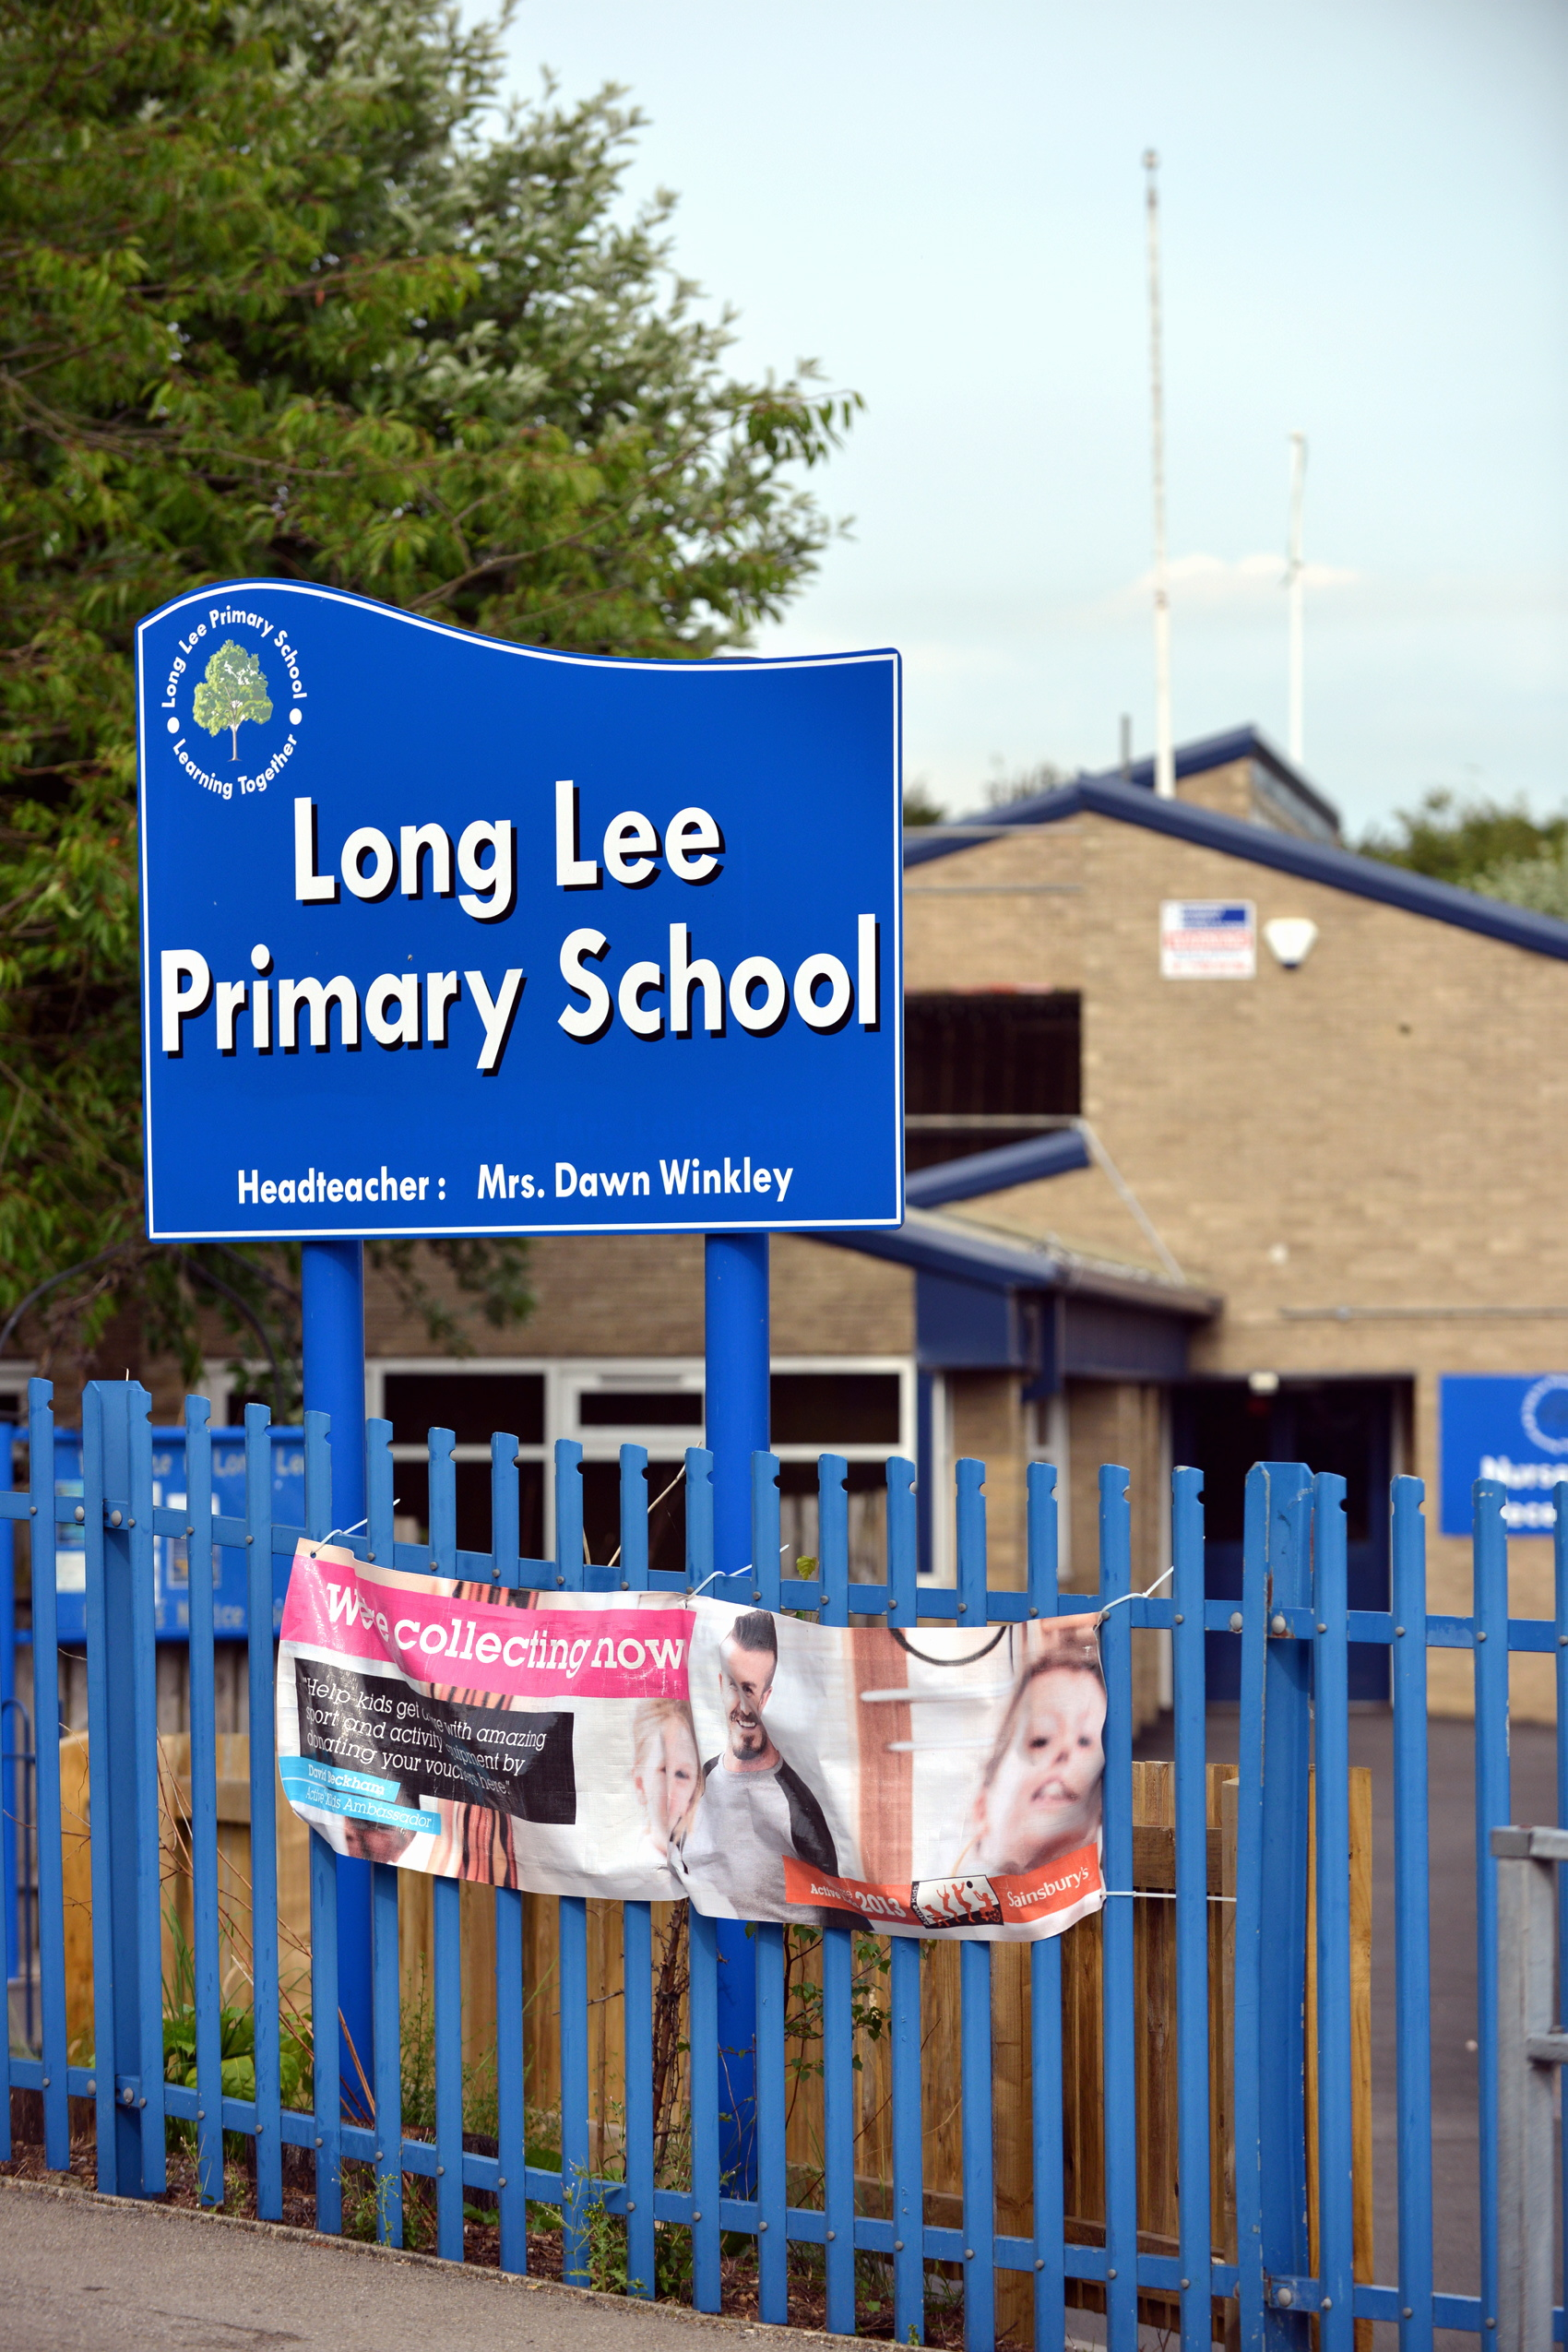 Long Lee Primary School, which is the subject of a second investigation into its practices